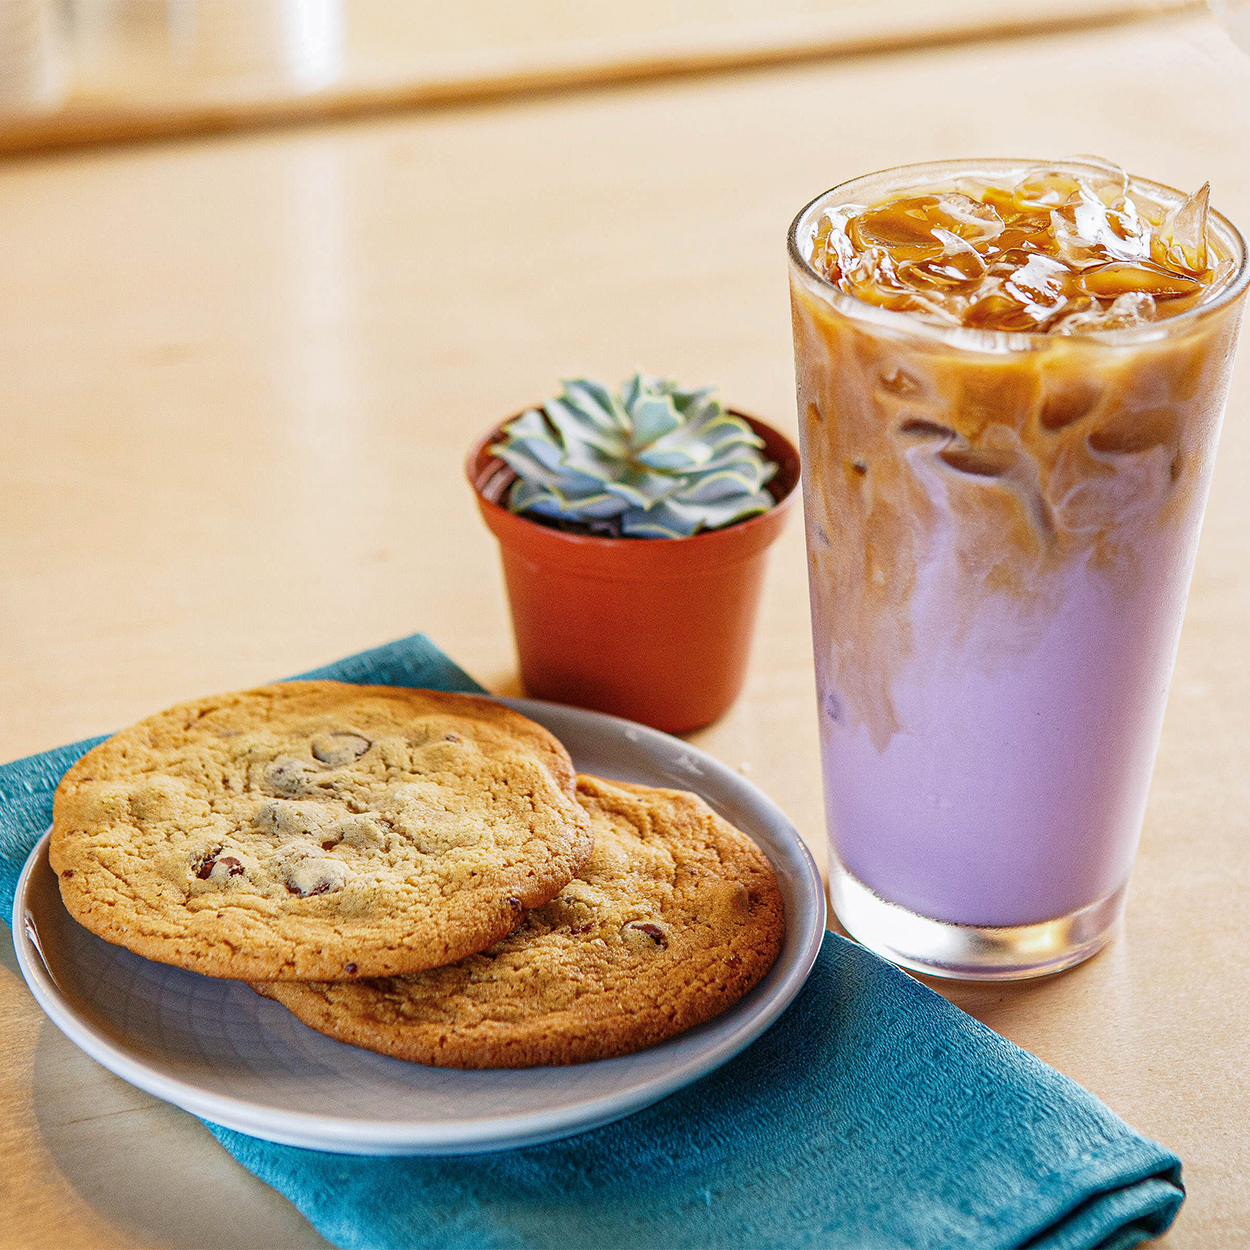 Celadon coffee and cookies